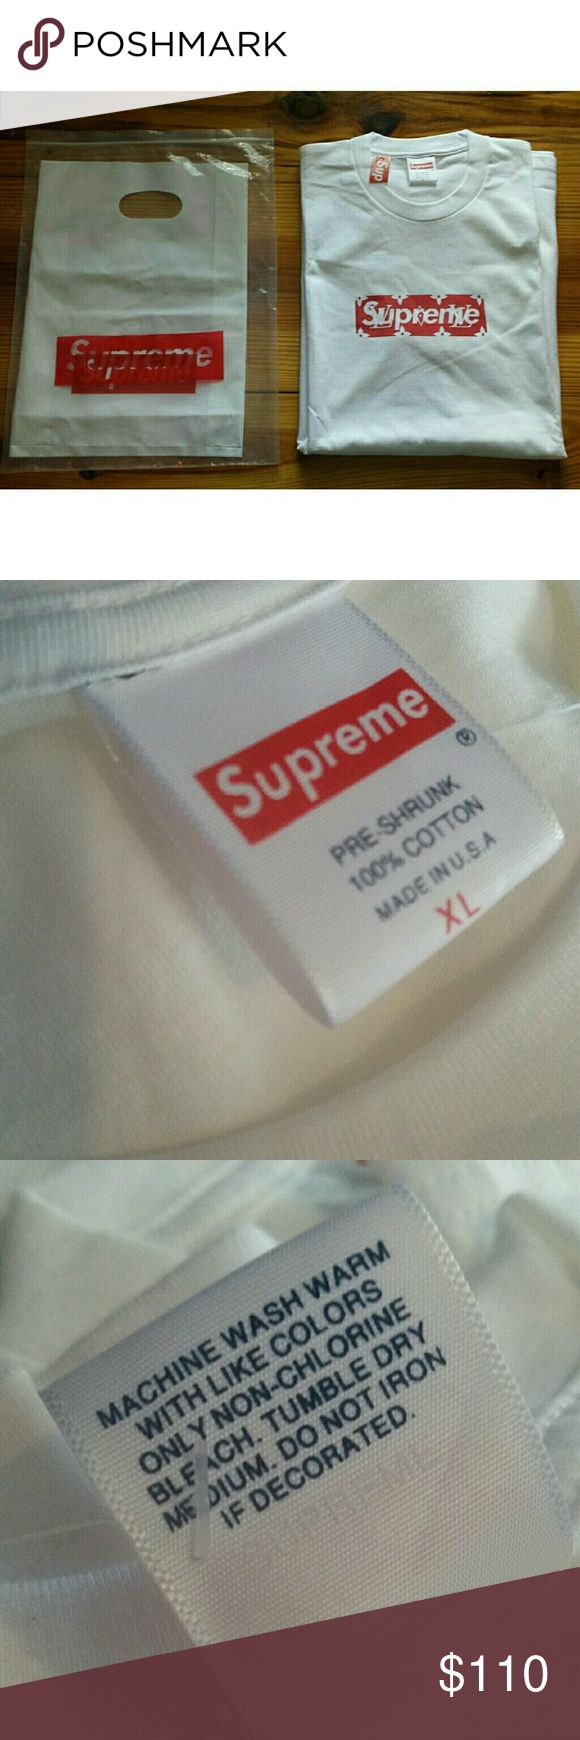 Supreme Louis Vuitton LV Box Logo XL Extra Large Supreme x Louis Vuitton Box Logo Shirt Color: White, Red Size: XL Extra Large Brand new with orginal dustbags  Fits true to size  Buy one shirt and get the 2nd one 10% off  Gucci Prada fendi yeezy boost nike jordan bape palace Polo Tommy hilfiger ralph lauren nautica adidas fear of god chanel Louis Vuitton Shirts Tees - Short Sleeve